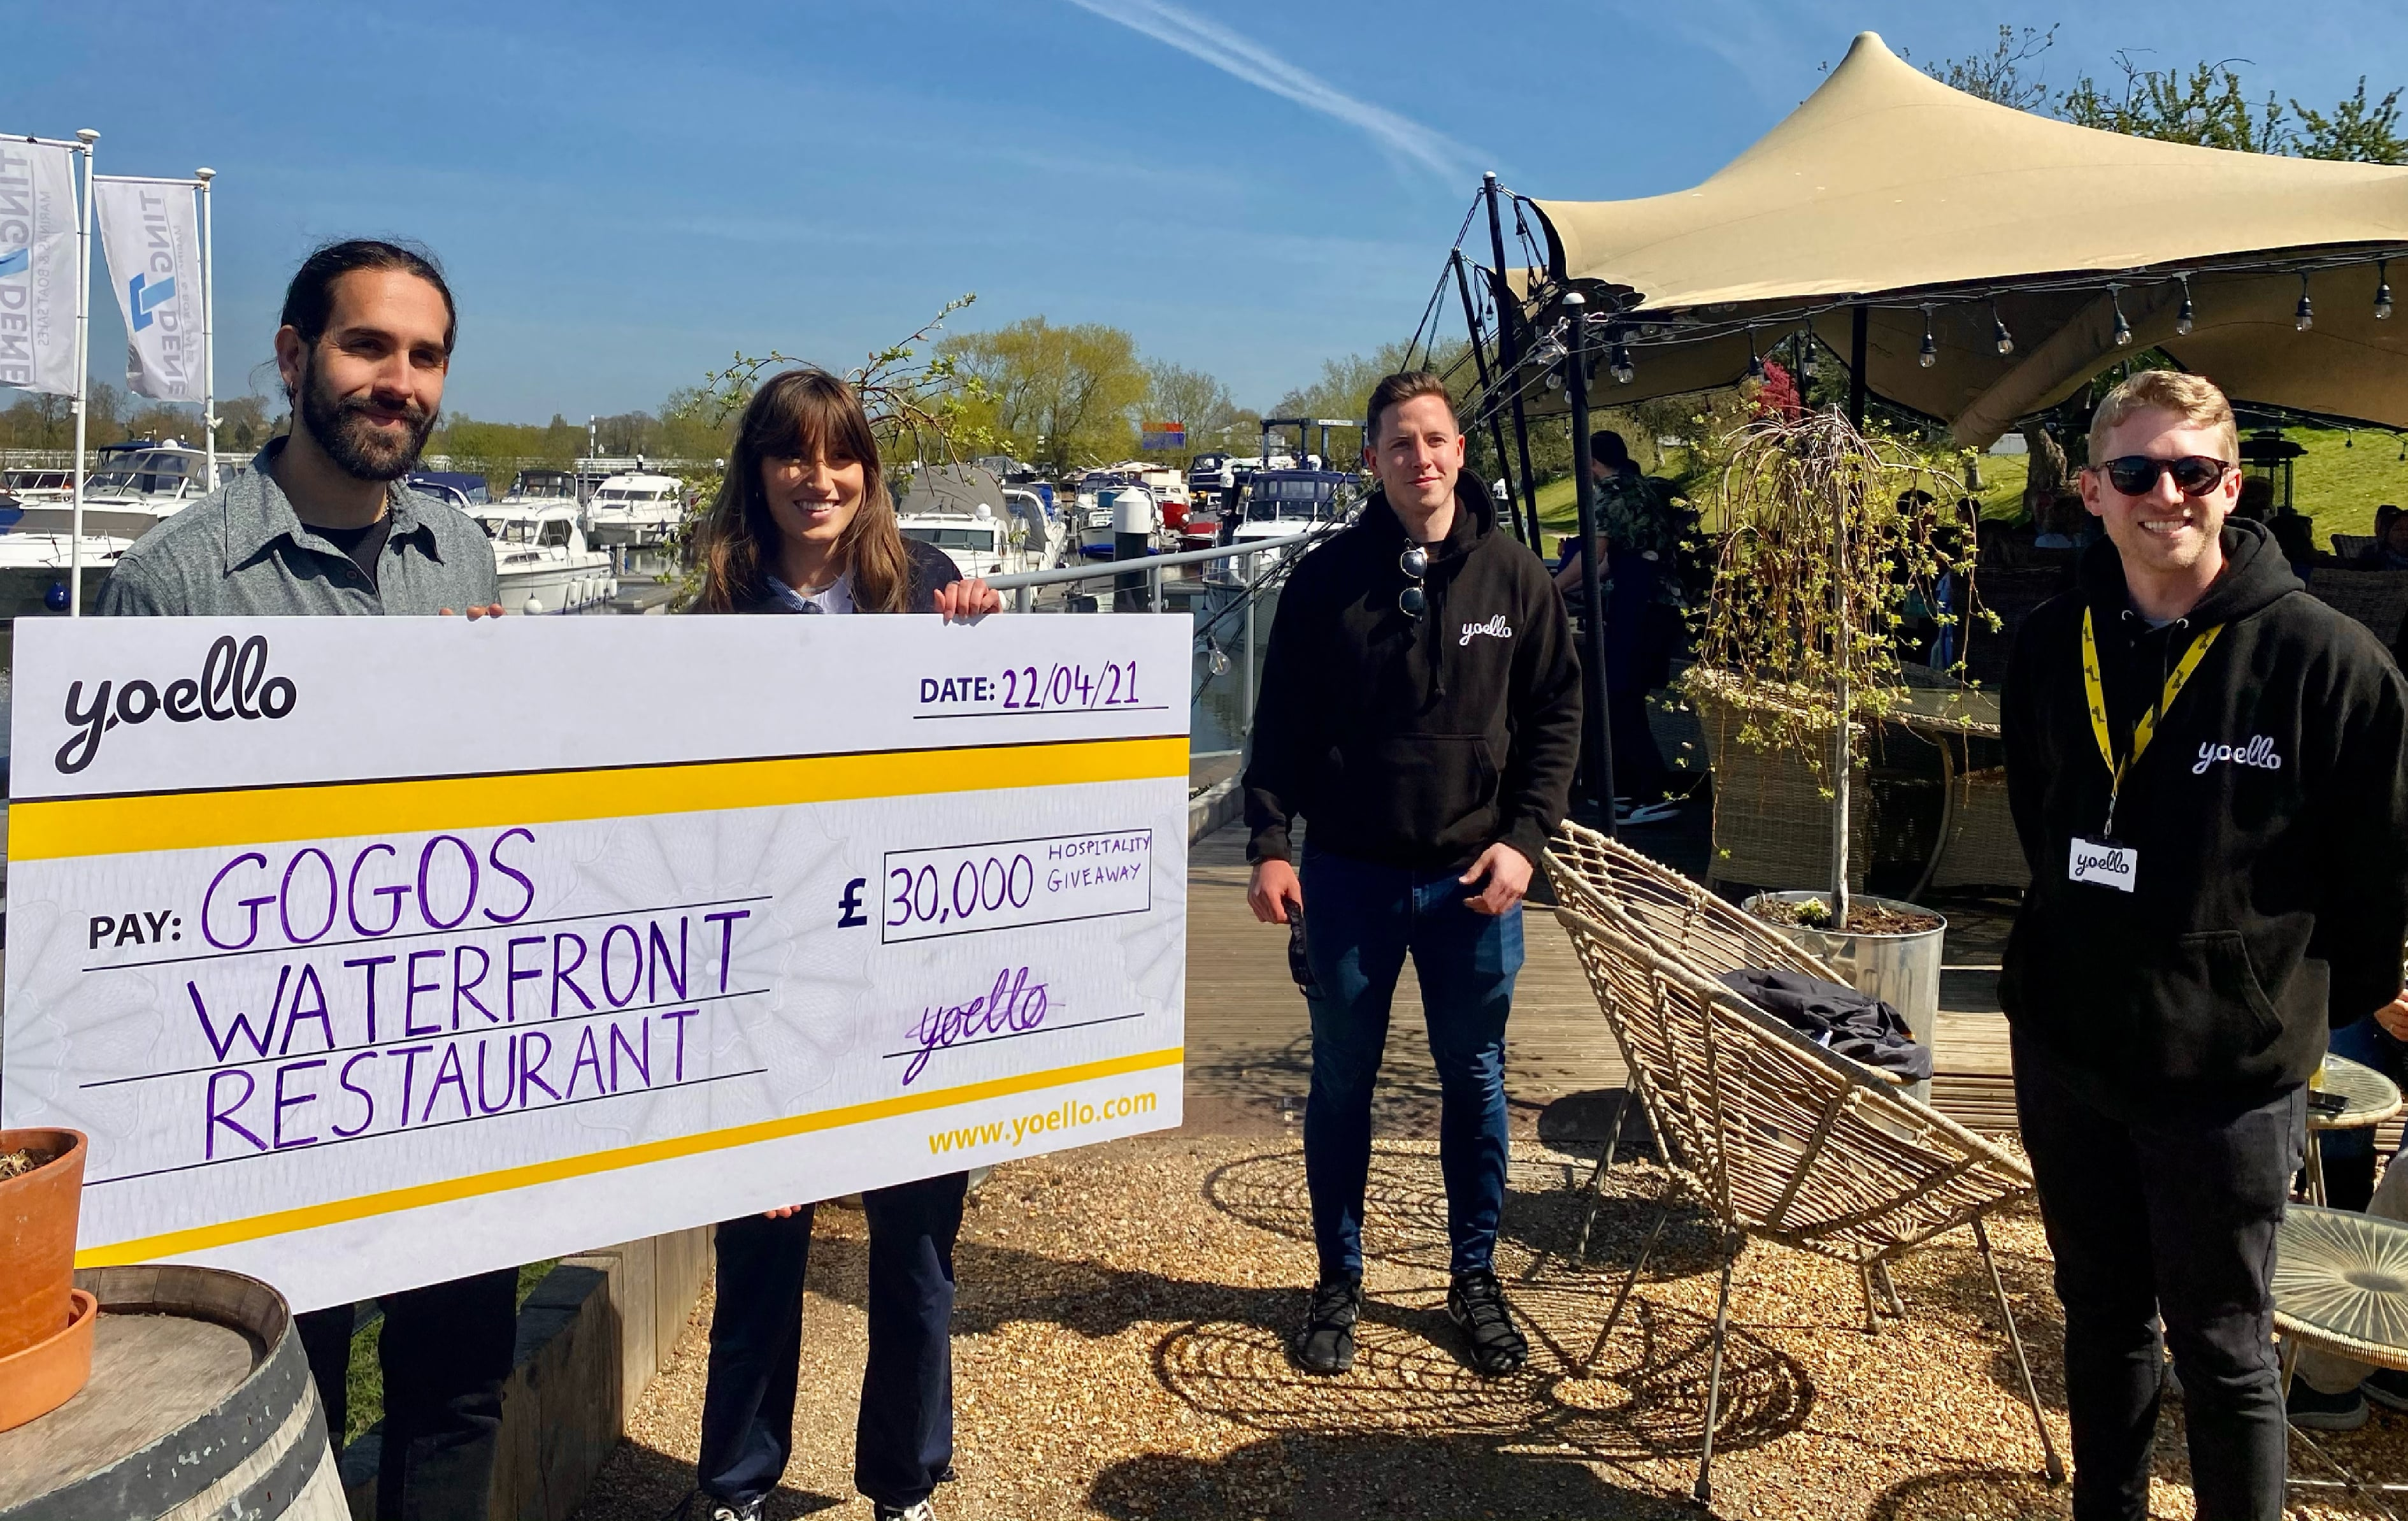 GOGOS Waterfront Restaurant in Windsor wins a game-changing £30,000 'hospitality reopening package'